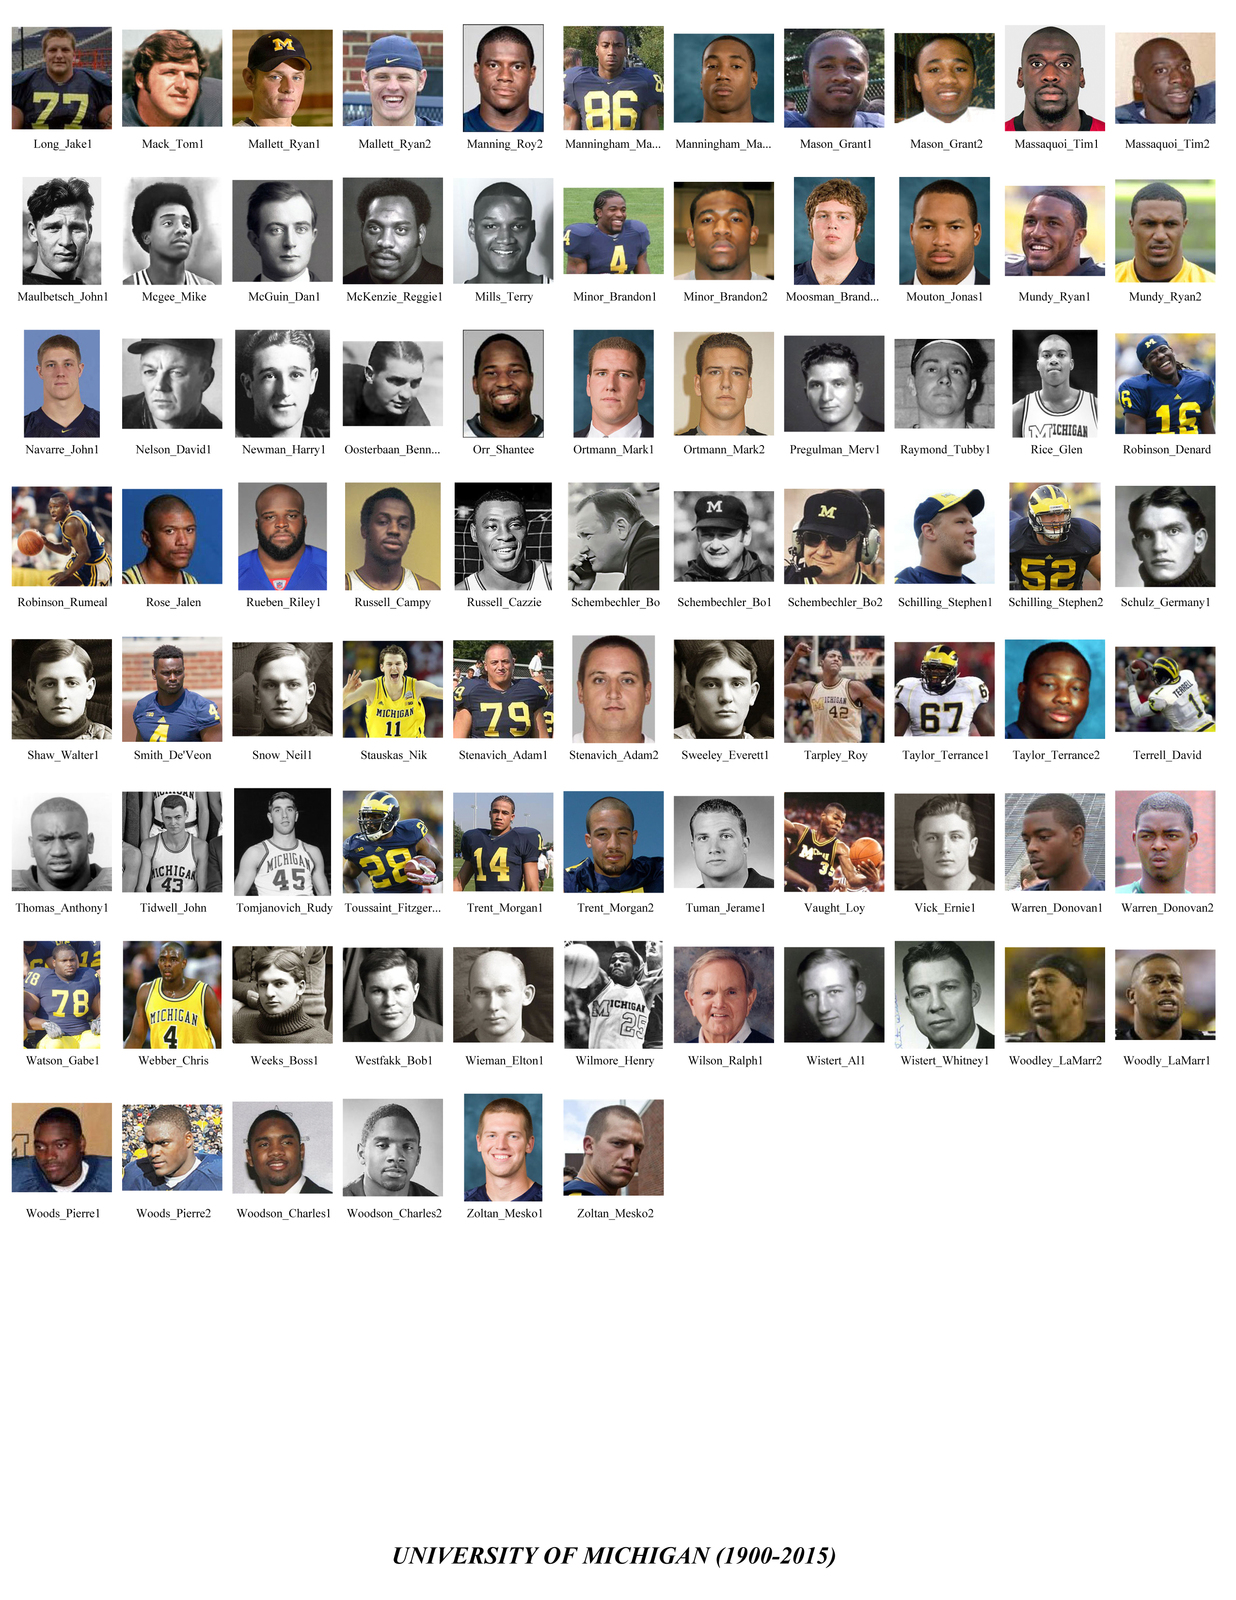 University of Michigan Mosaic Print Art Created Using Past and Present Players.